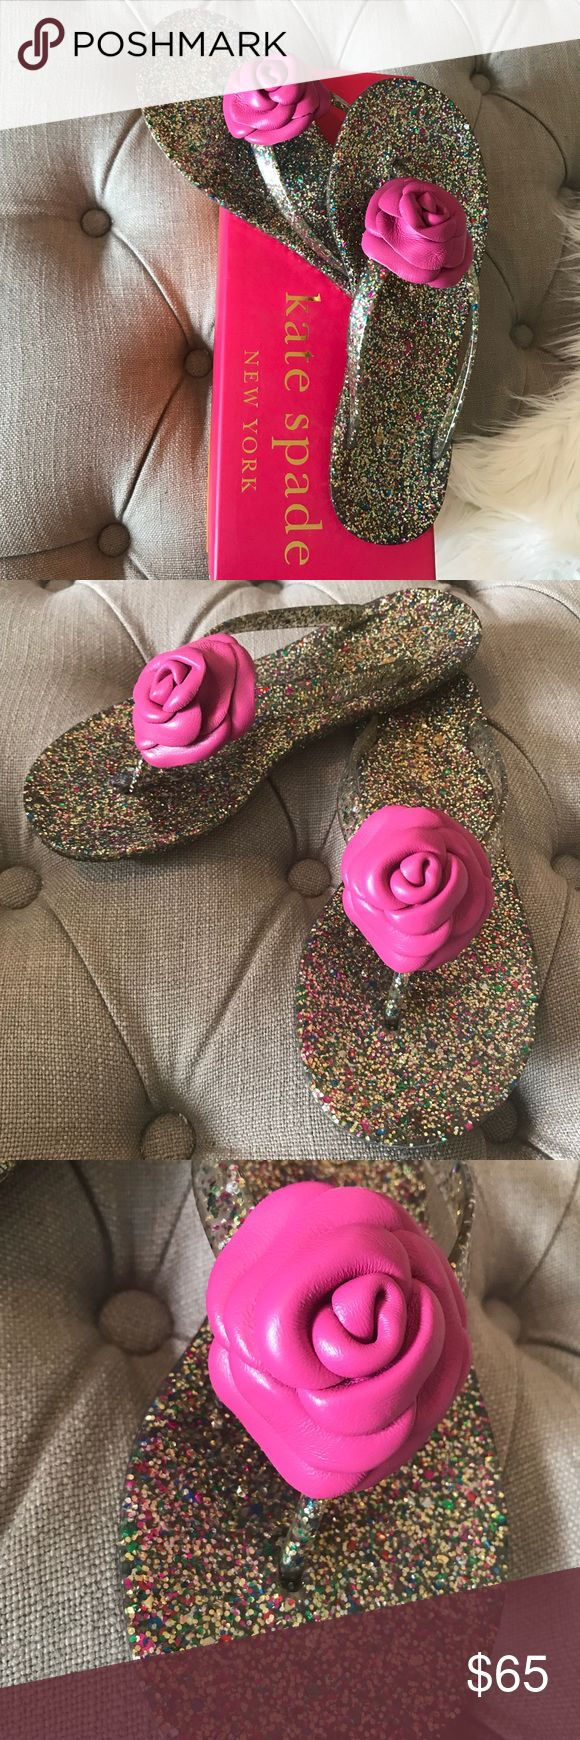 Kate Spade glitter flip flops with flower Kate Spade glitter flip flops with flower bud. Fayette multi-glitter rubber lipstick pink nappa. Super Cute! You need these in your life this spring and summer! kate spade Shoes Sandals